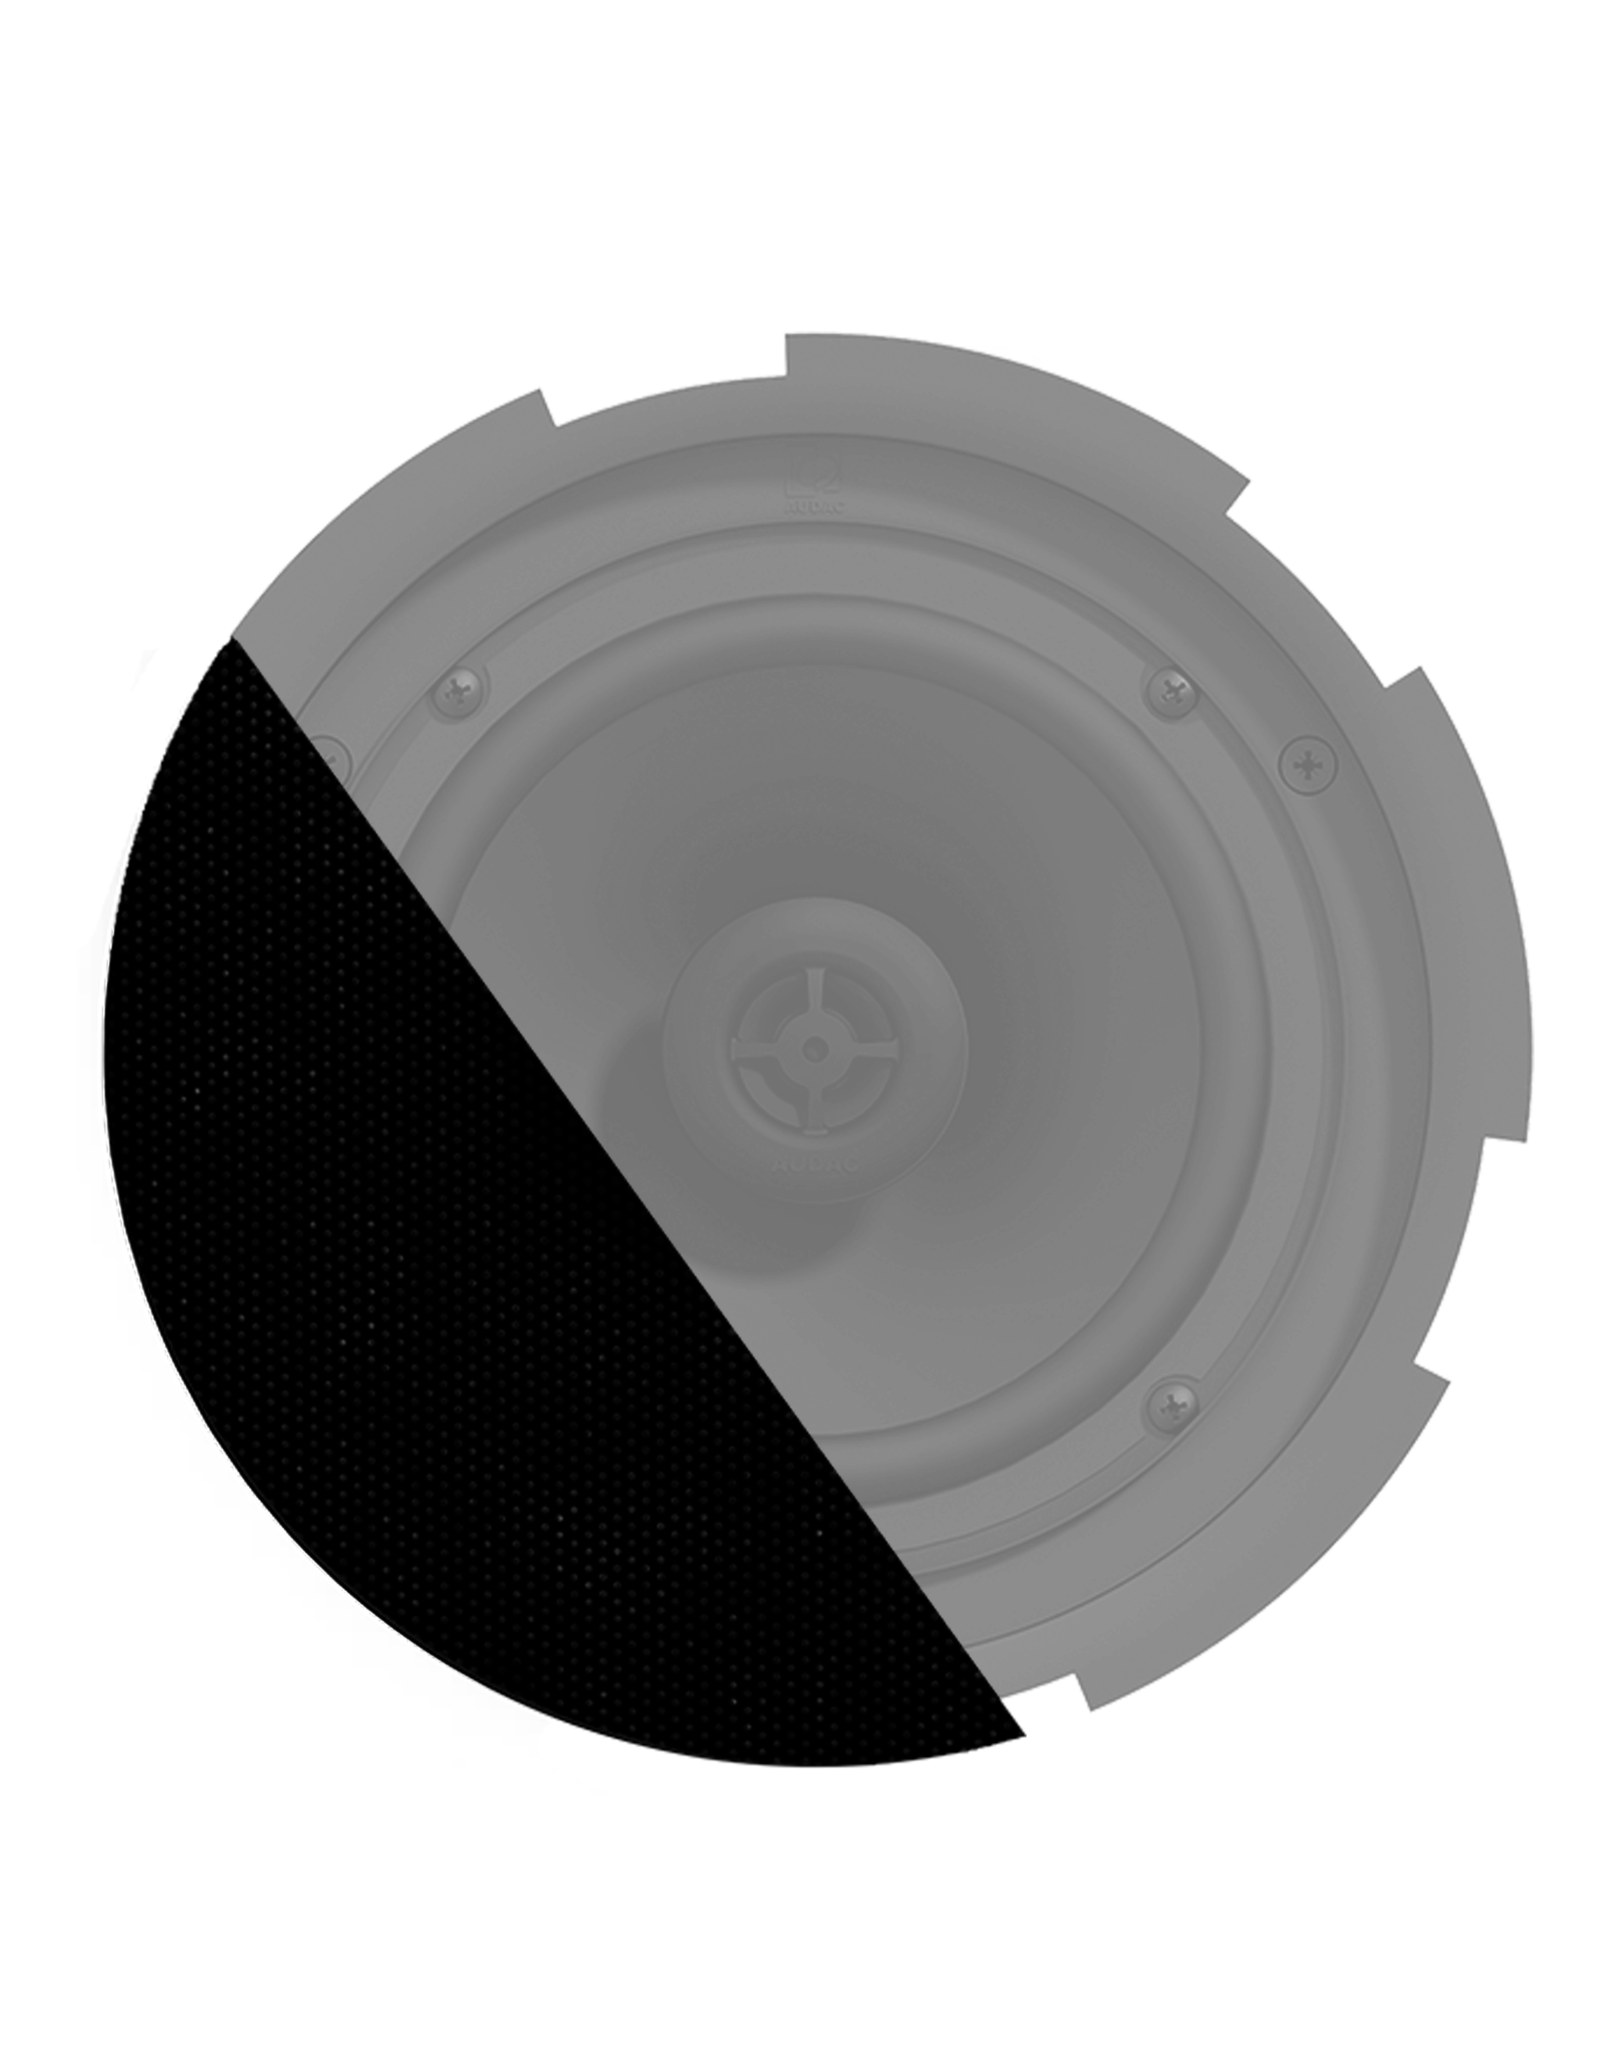 Audac Front grill for CIRA7 series speakers with cloth & outdoor treatment Black version